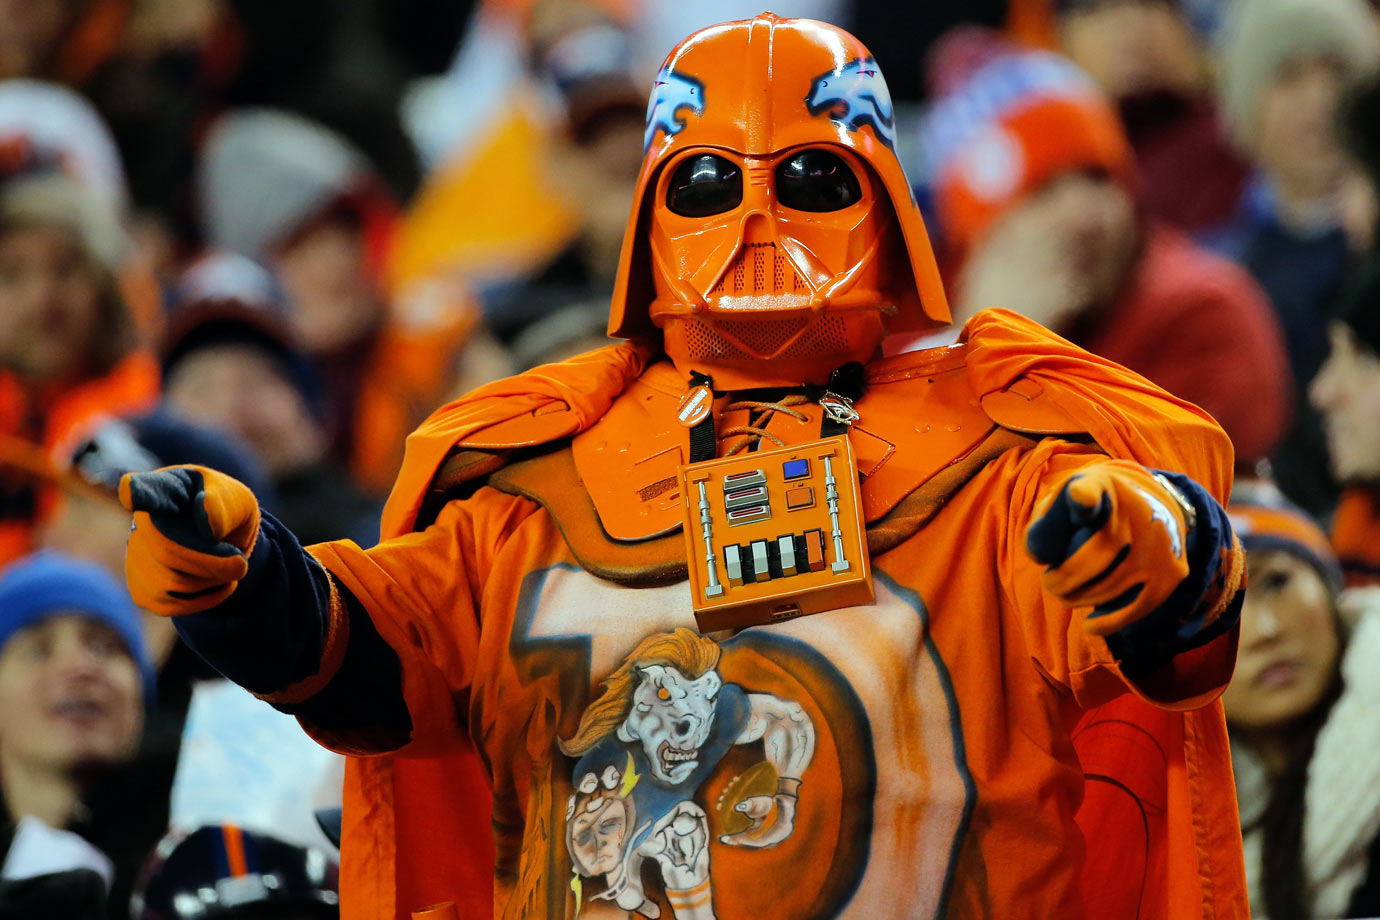 A Denver Broncos fan dressed in an orange Darth Vader costume stands and cheers during the Broncos game against the Oakland Raiders on Dec. 28, 2014 at Sports Authority Field at Mile High in Denver.